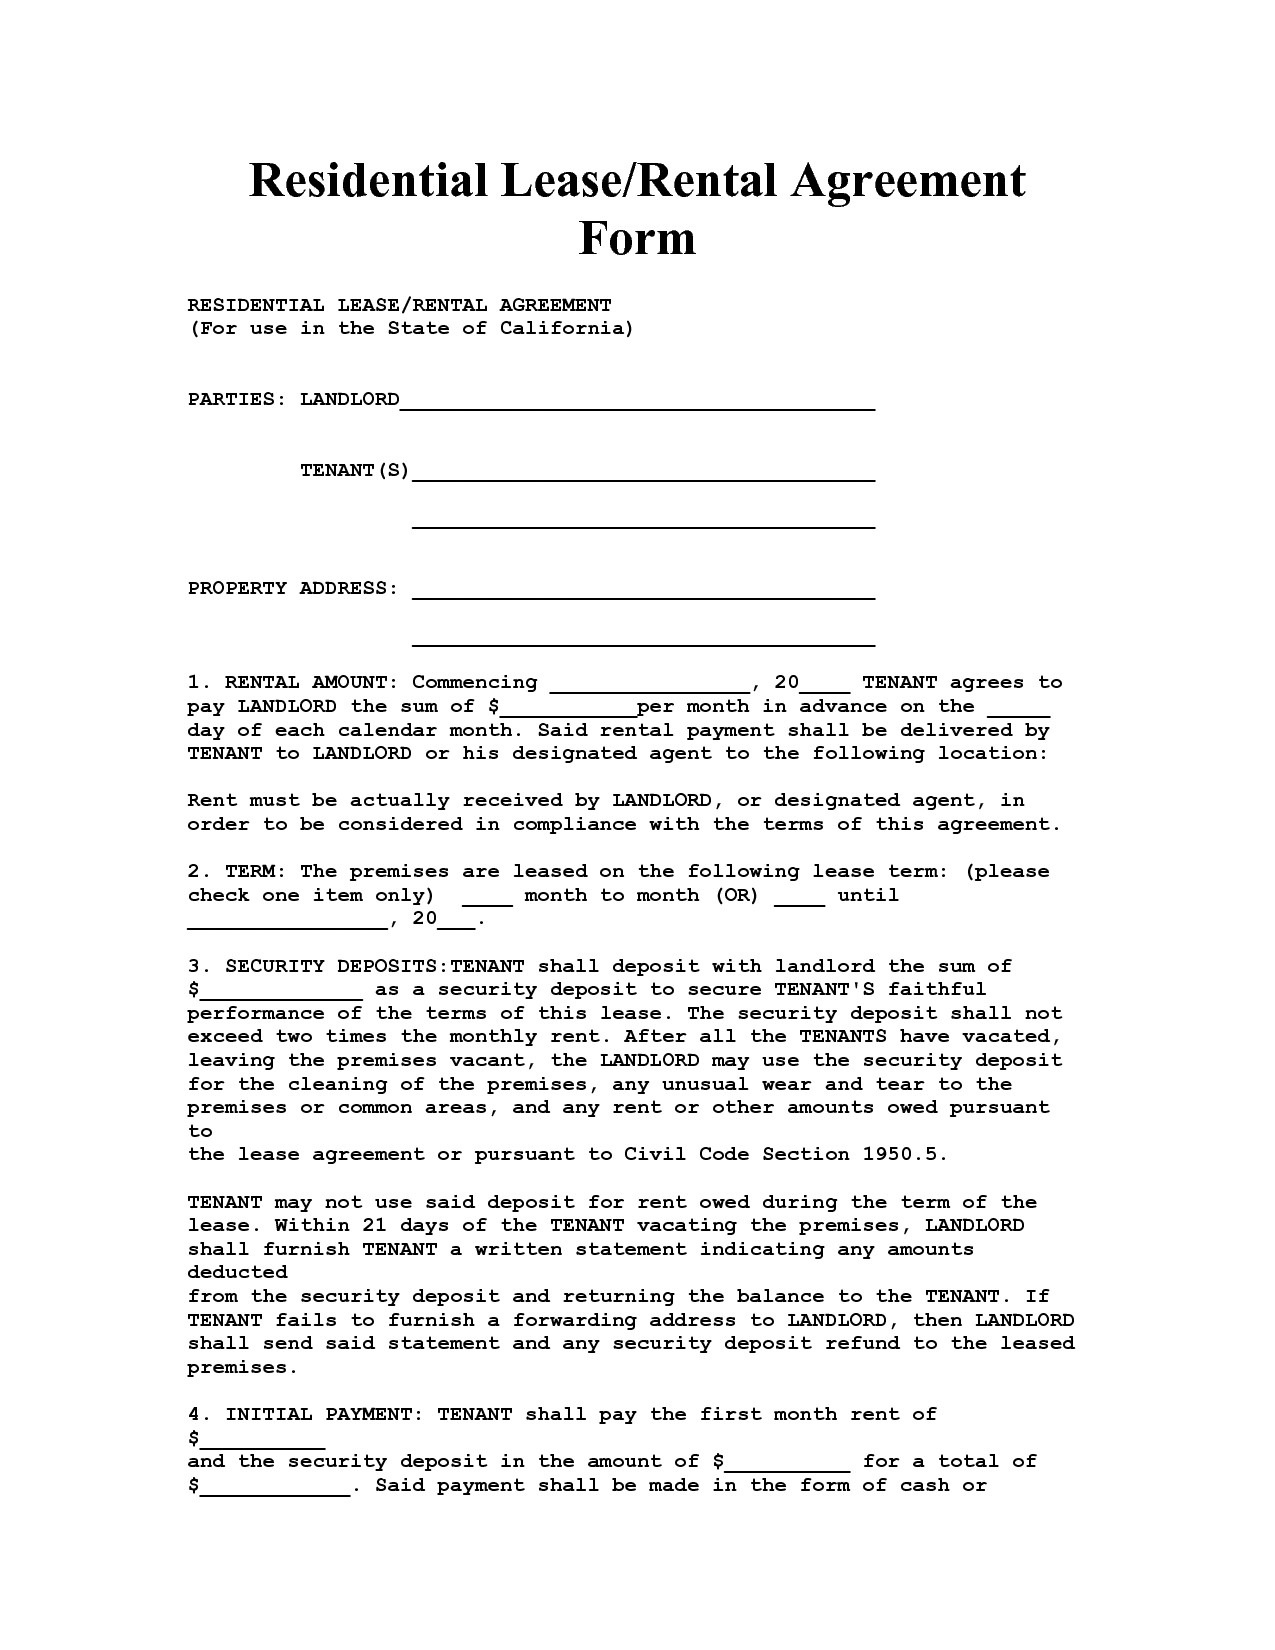 Blank Florida Residential Lease Agreement Free Residential Lease Agreement Forms To Print Beautiful Lease